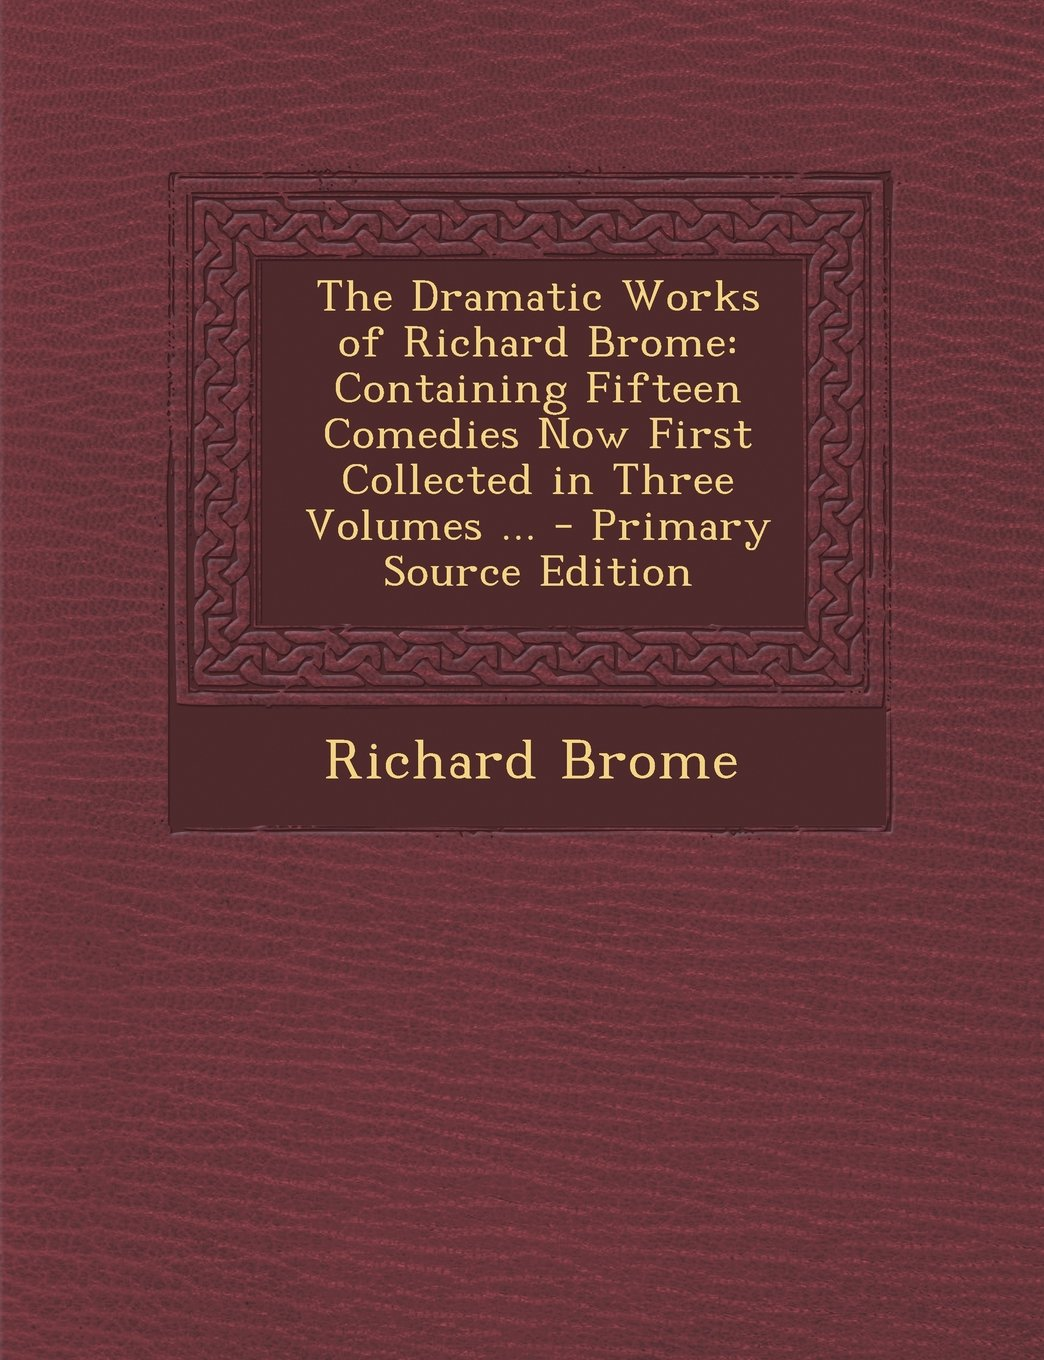 Download The Dramatic Works of Richard Brome: Containing Fifteen Comedies Now First Collected in Three Volumes ... - Primary Source Edition ebook